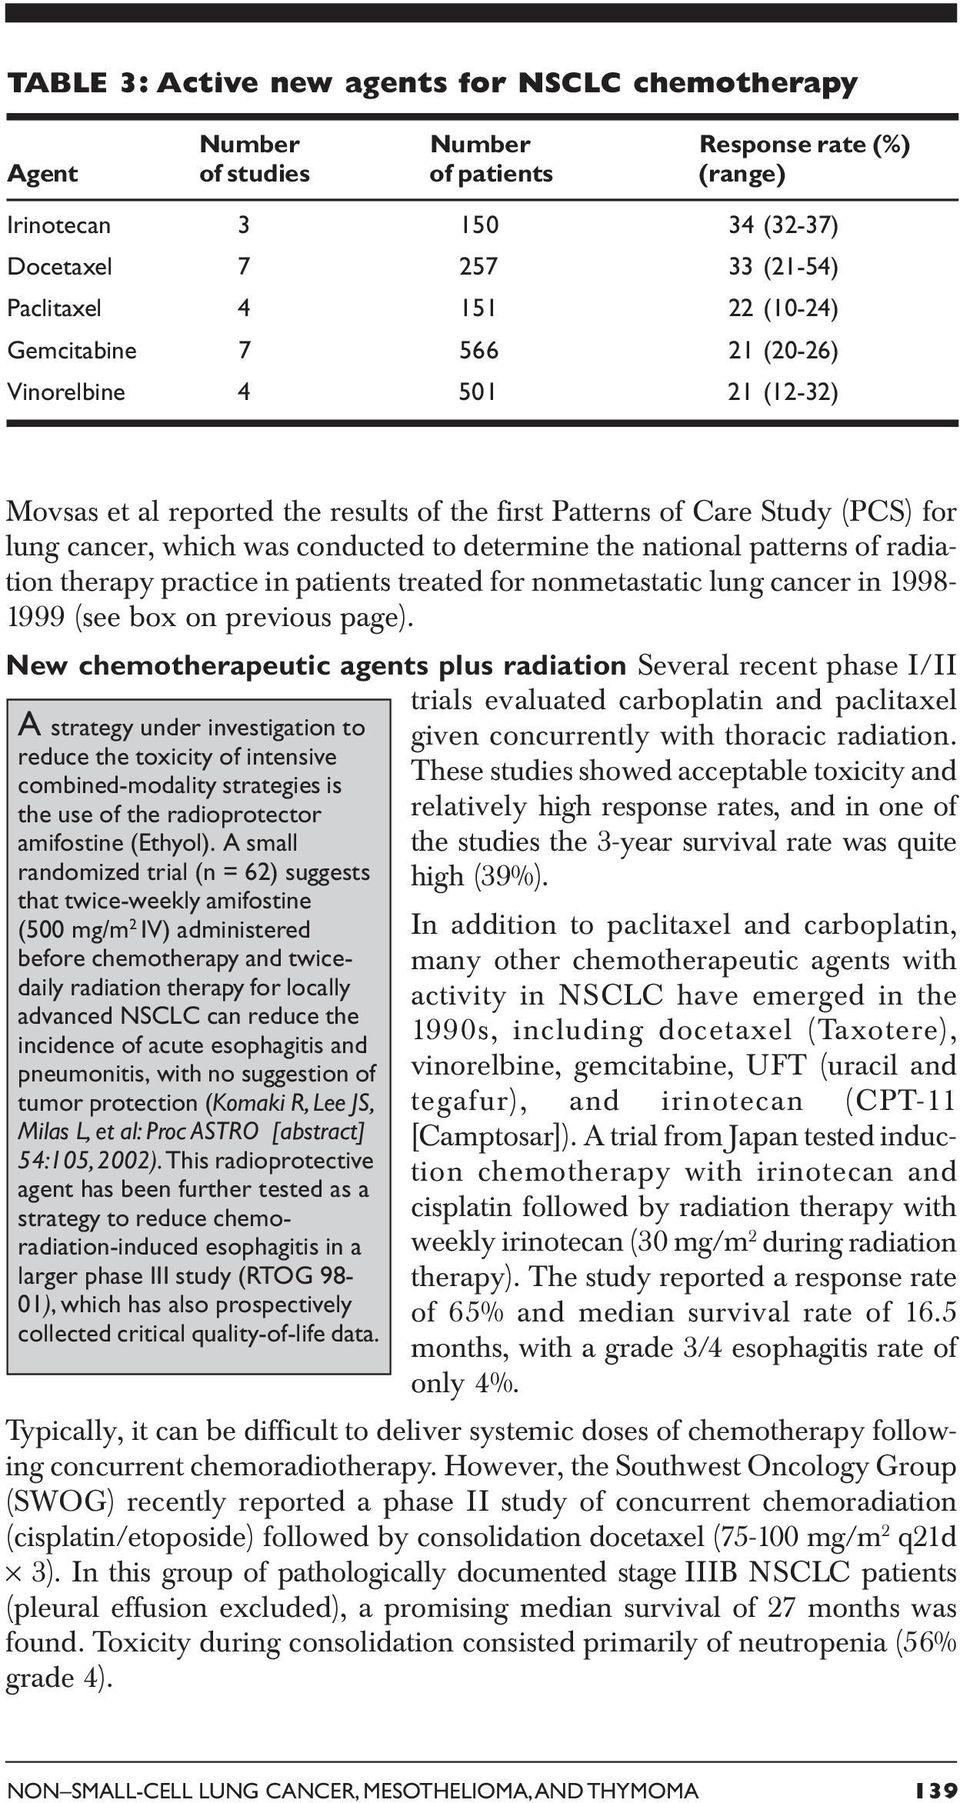 national patterns of radiation therapy practice in patients treated for nonmetastatic lung cancer in 1998-1999 (see box on previous page).